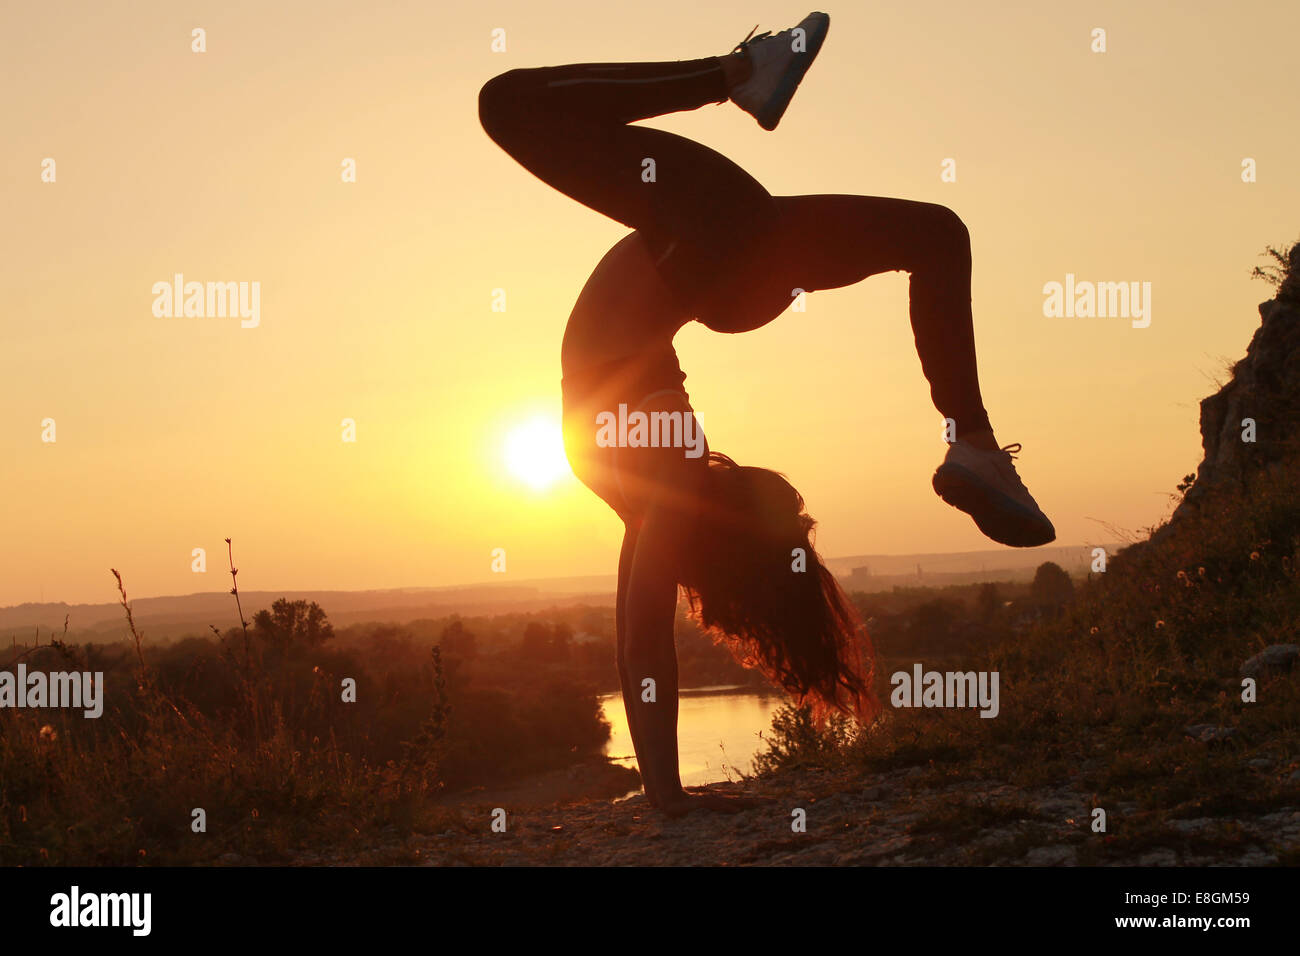 Young woman doing handstand at sunset - Stock Image